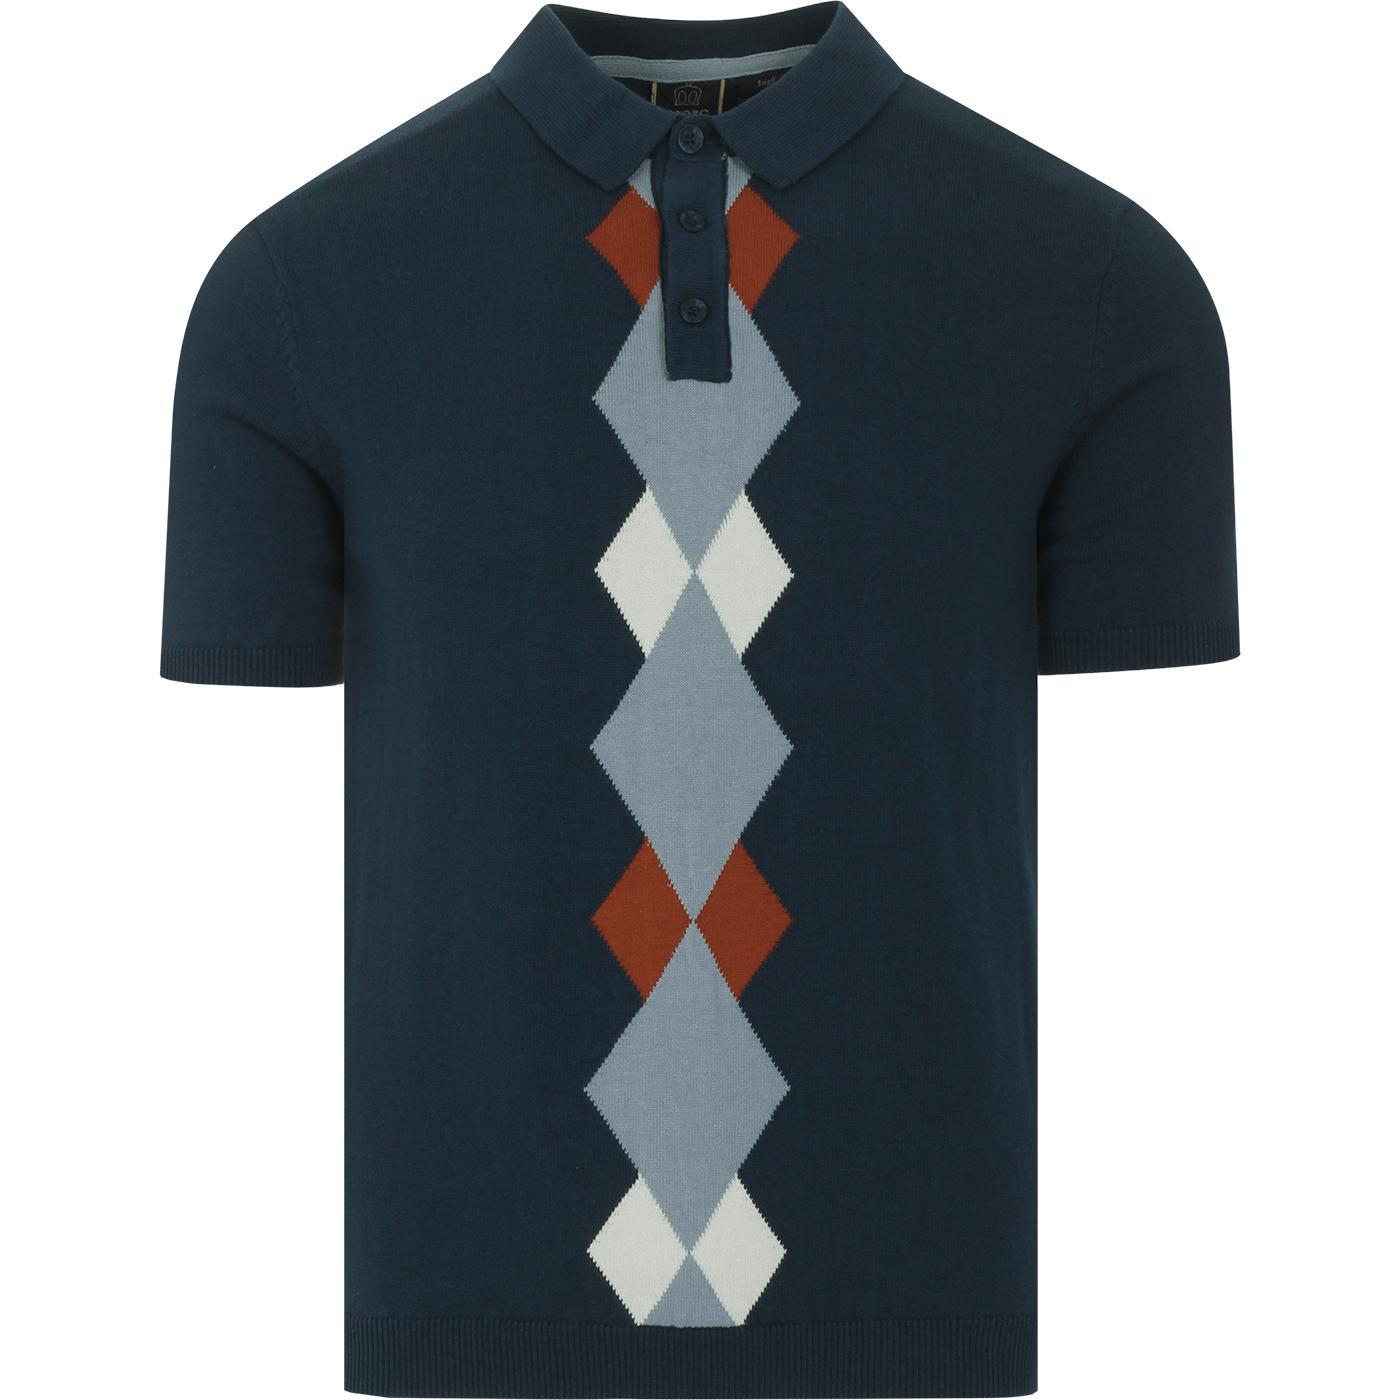 Ansell MERC 60s Mod Argyle Panel Knit Polo Top DS